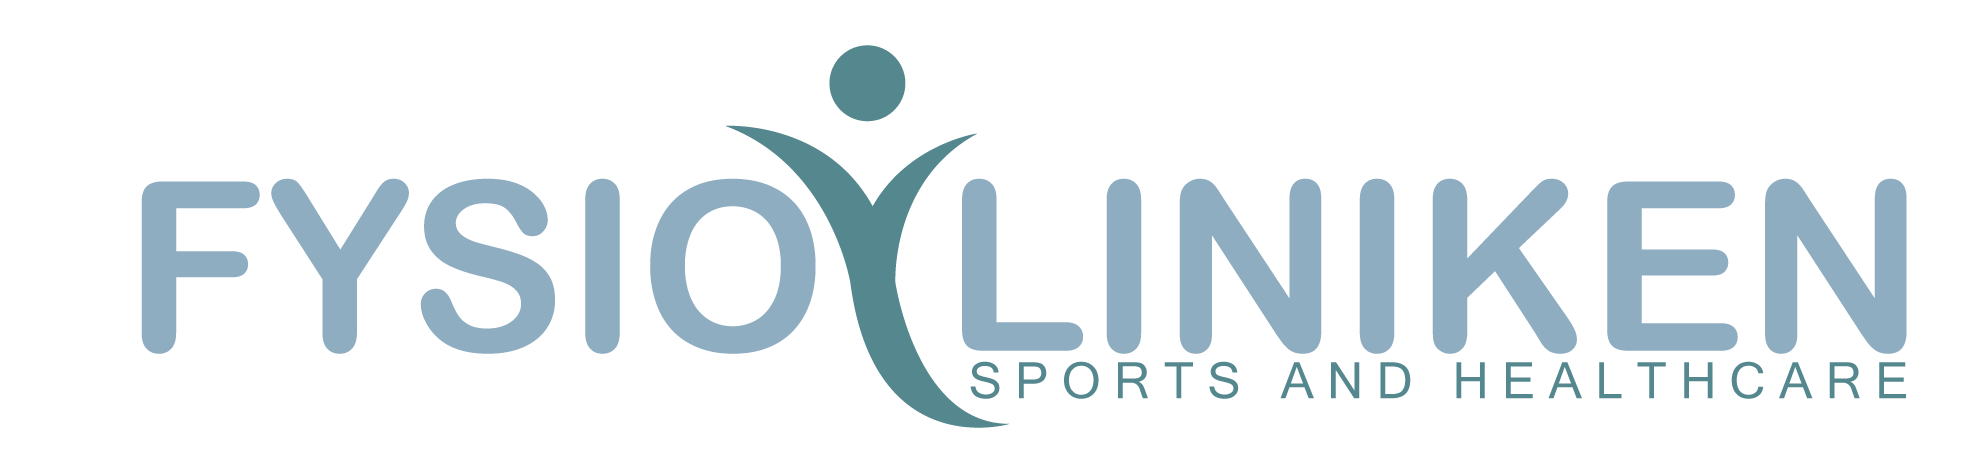 Fysiokliniken Sports & Healthcare